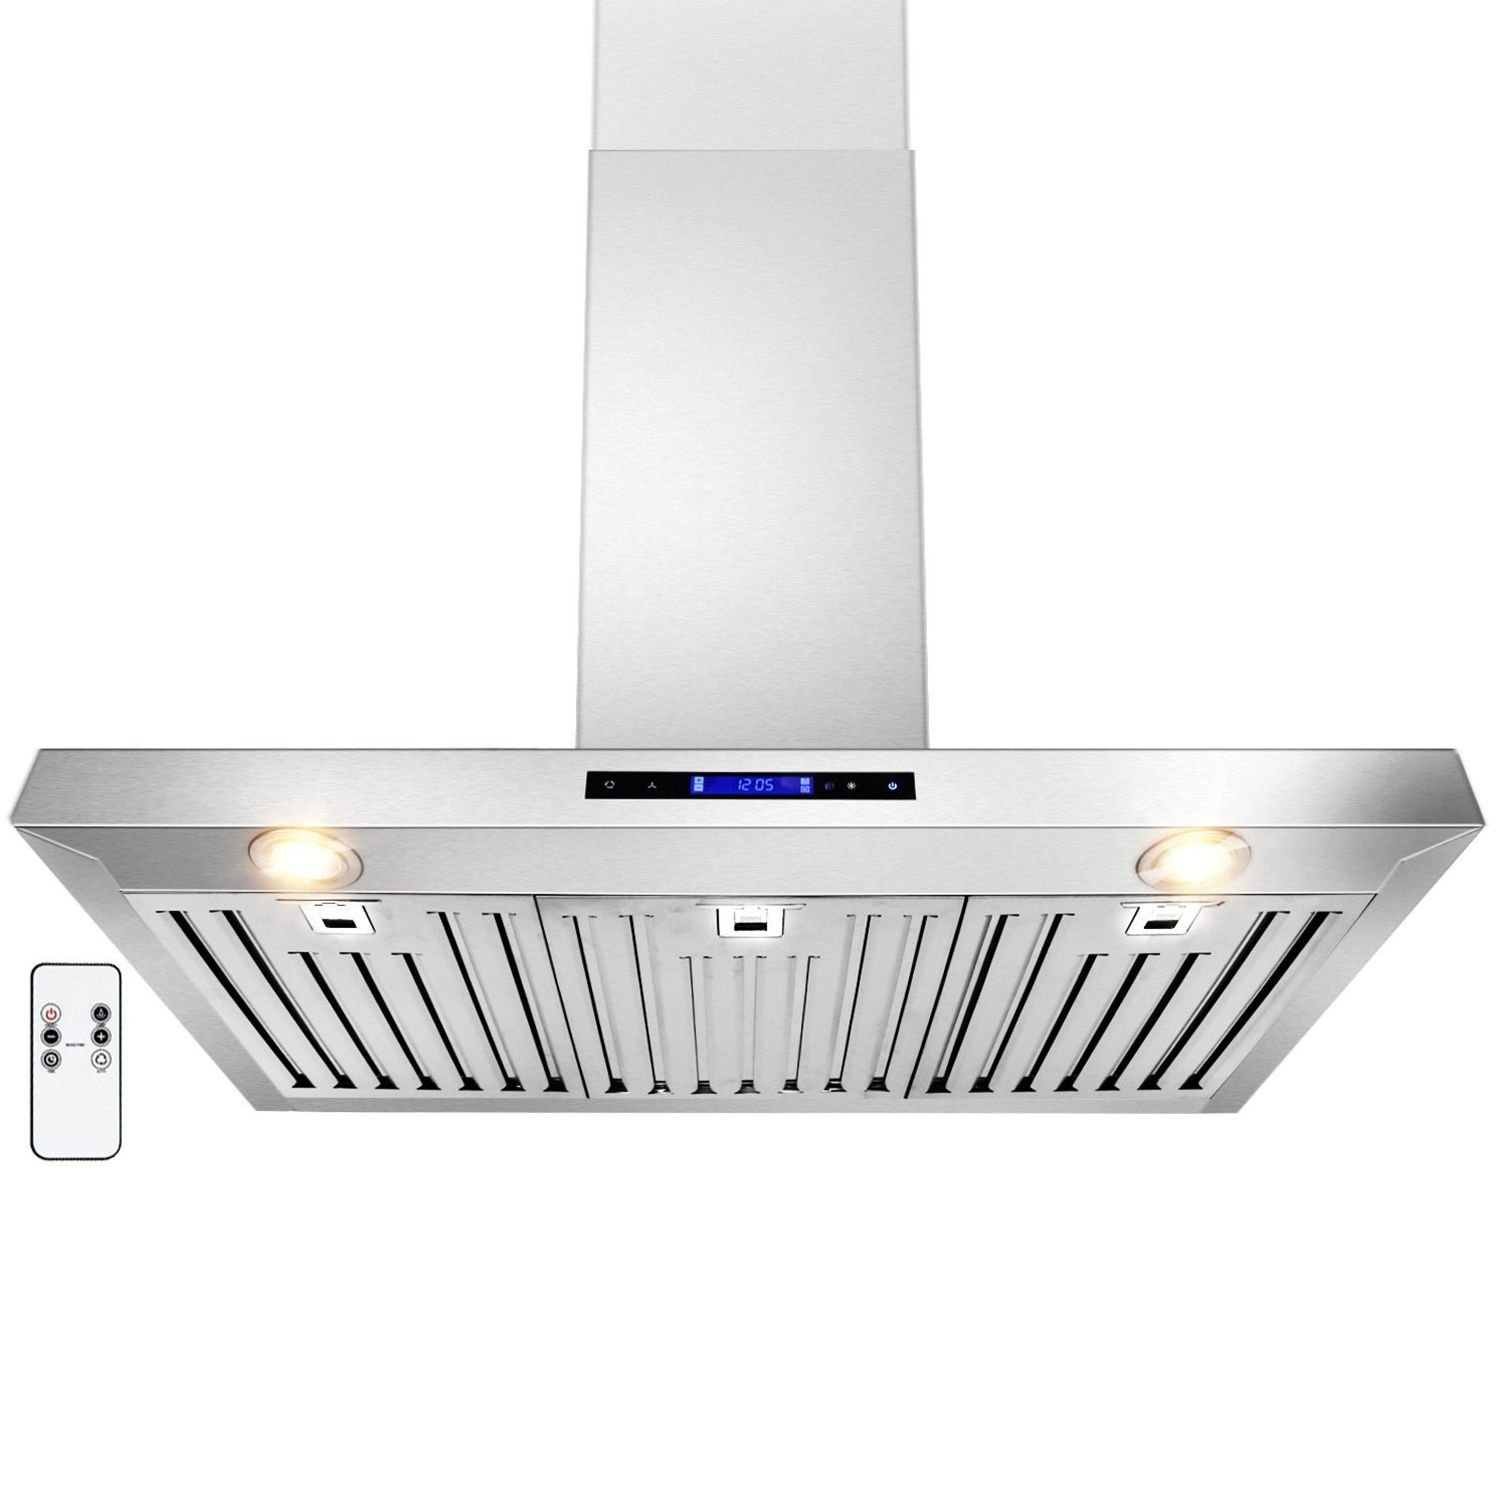 GOLDEN VANTAGE 36 Wall Mount Stainless Steel Range Hood With Remote GV-Z01-36 GVZ01-36